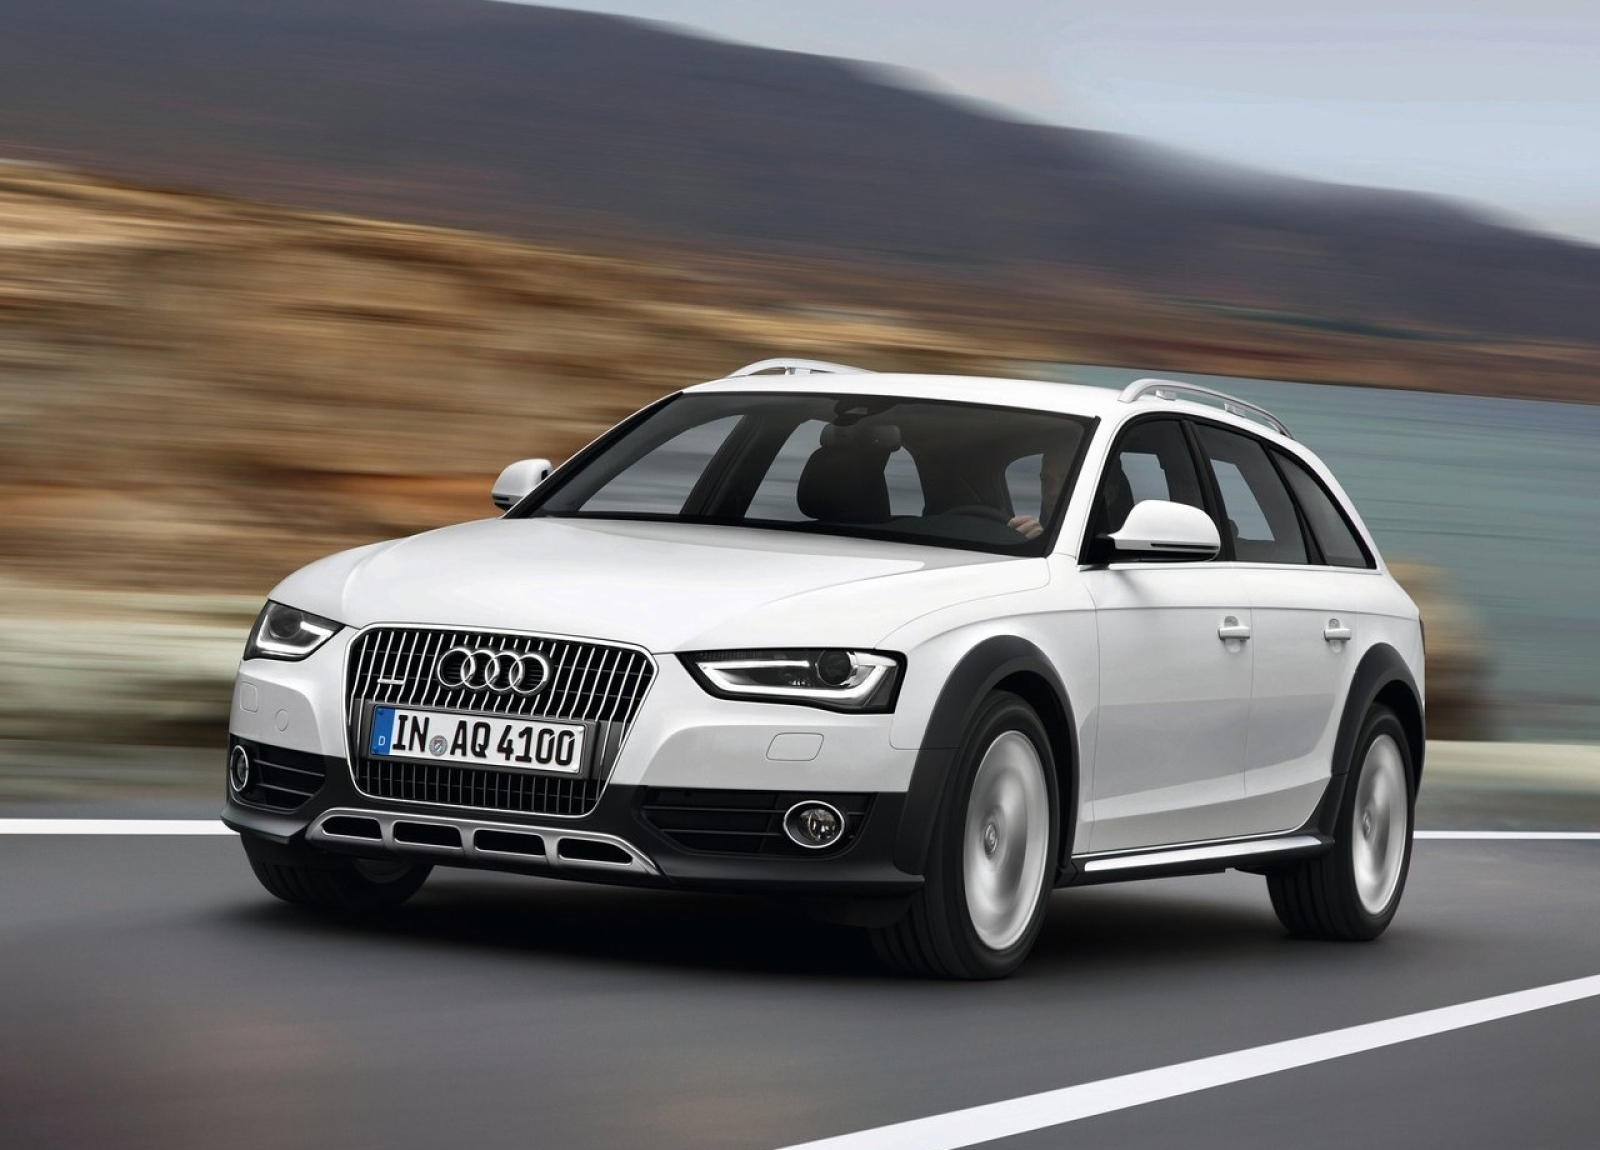 audi a4 allroad hd wallpapers the world of audi. Black Bedroom Furniture Sets. Home Design Ideas